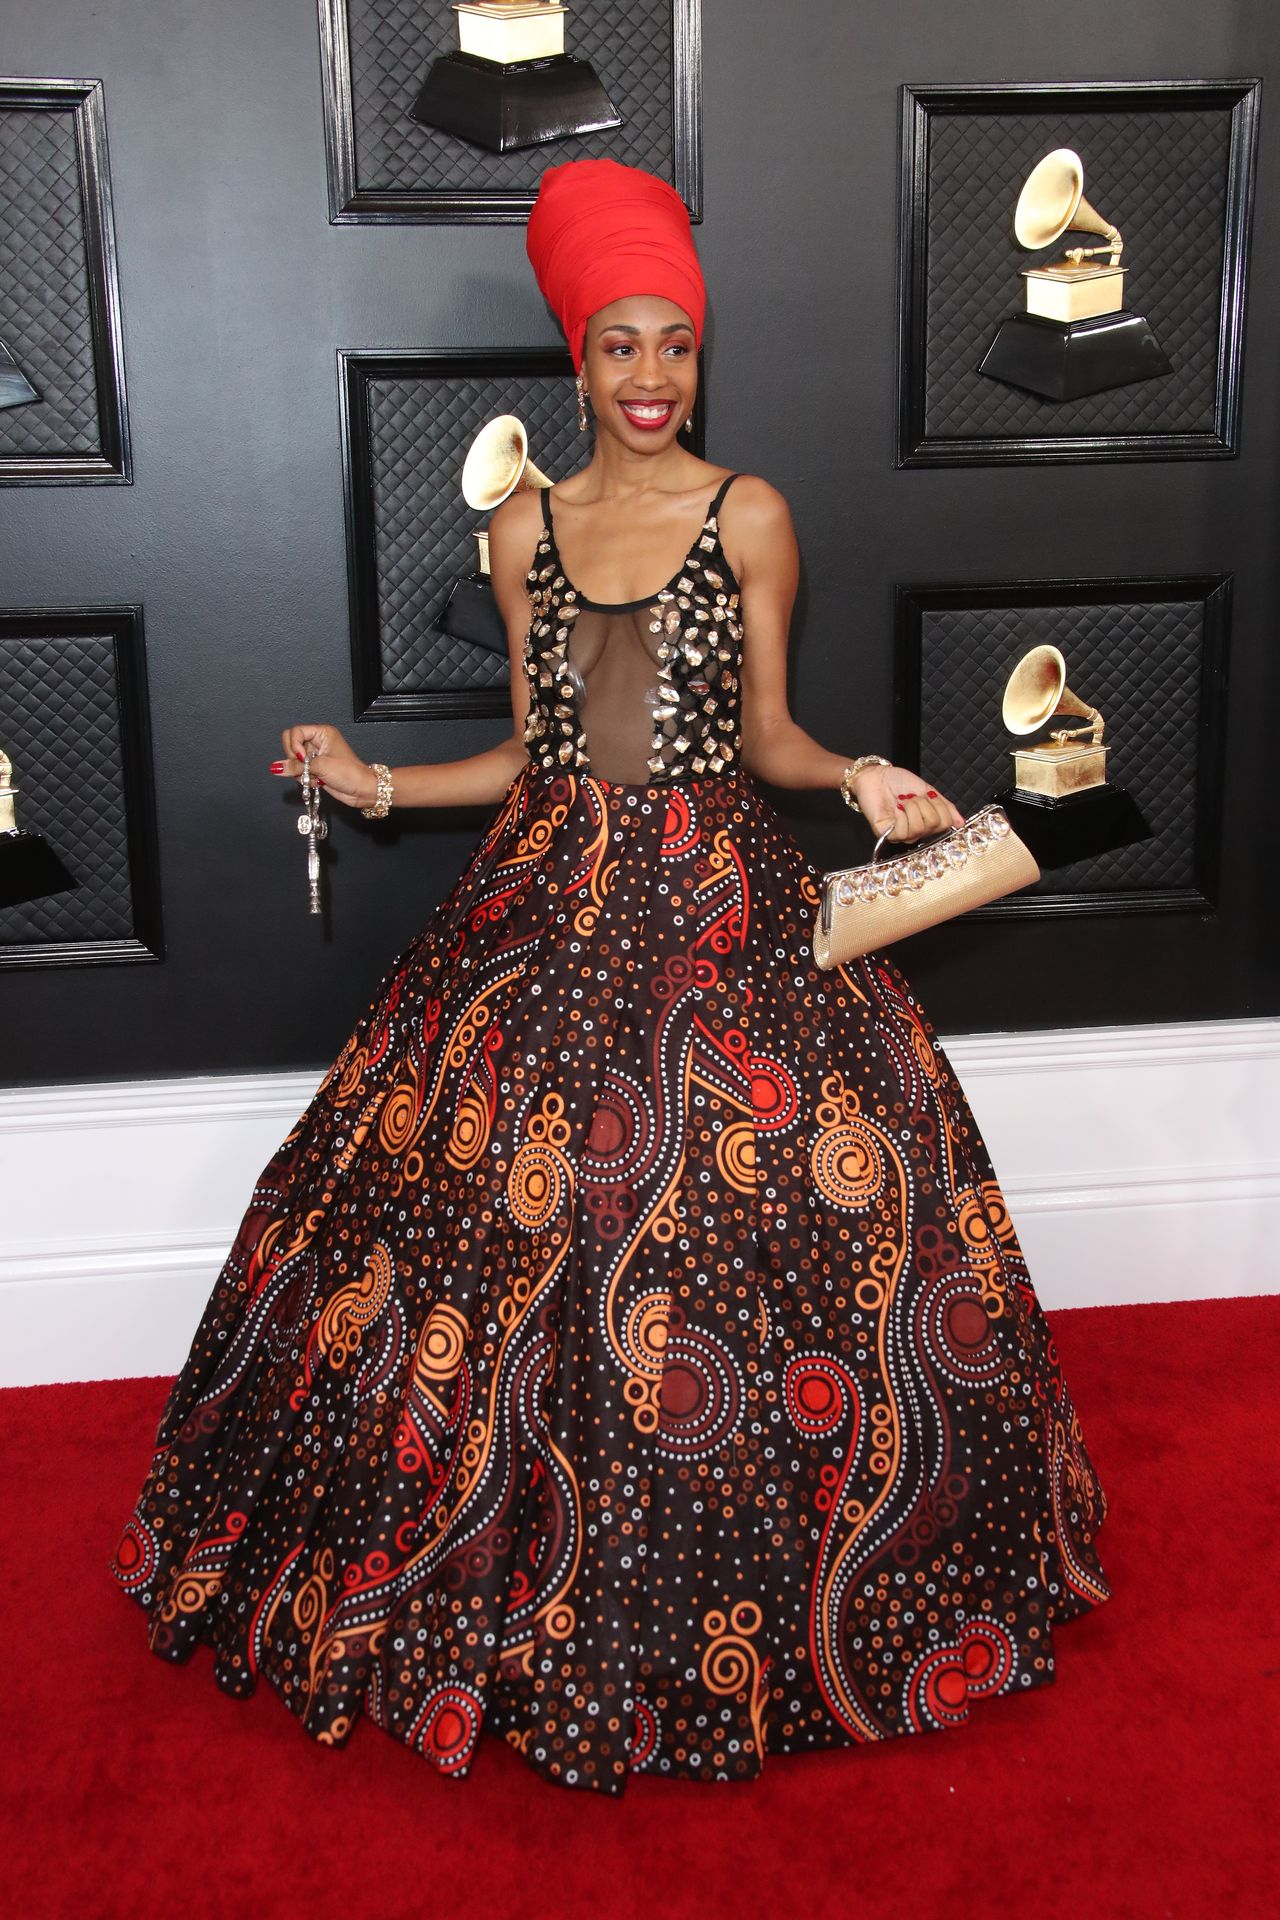 Jazzmeia Horn Displays Her Tits At The 62nd Annual Grammy Awards 0001